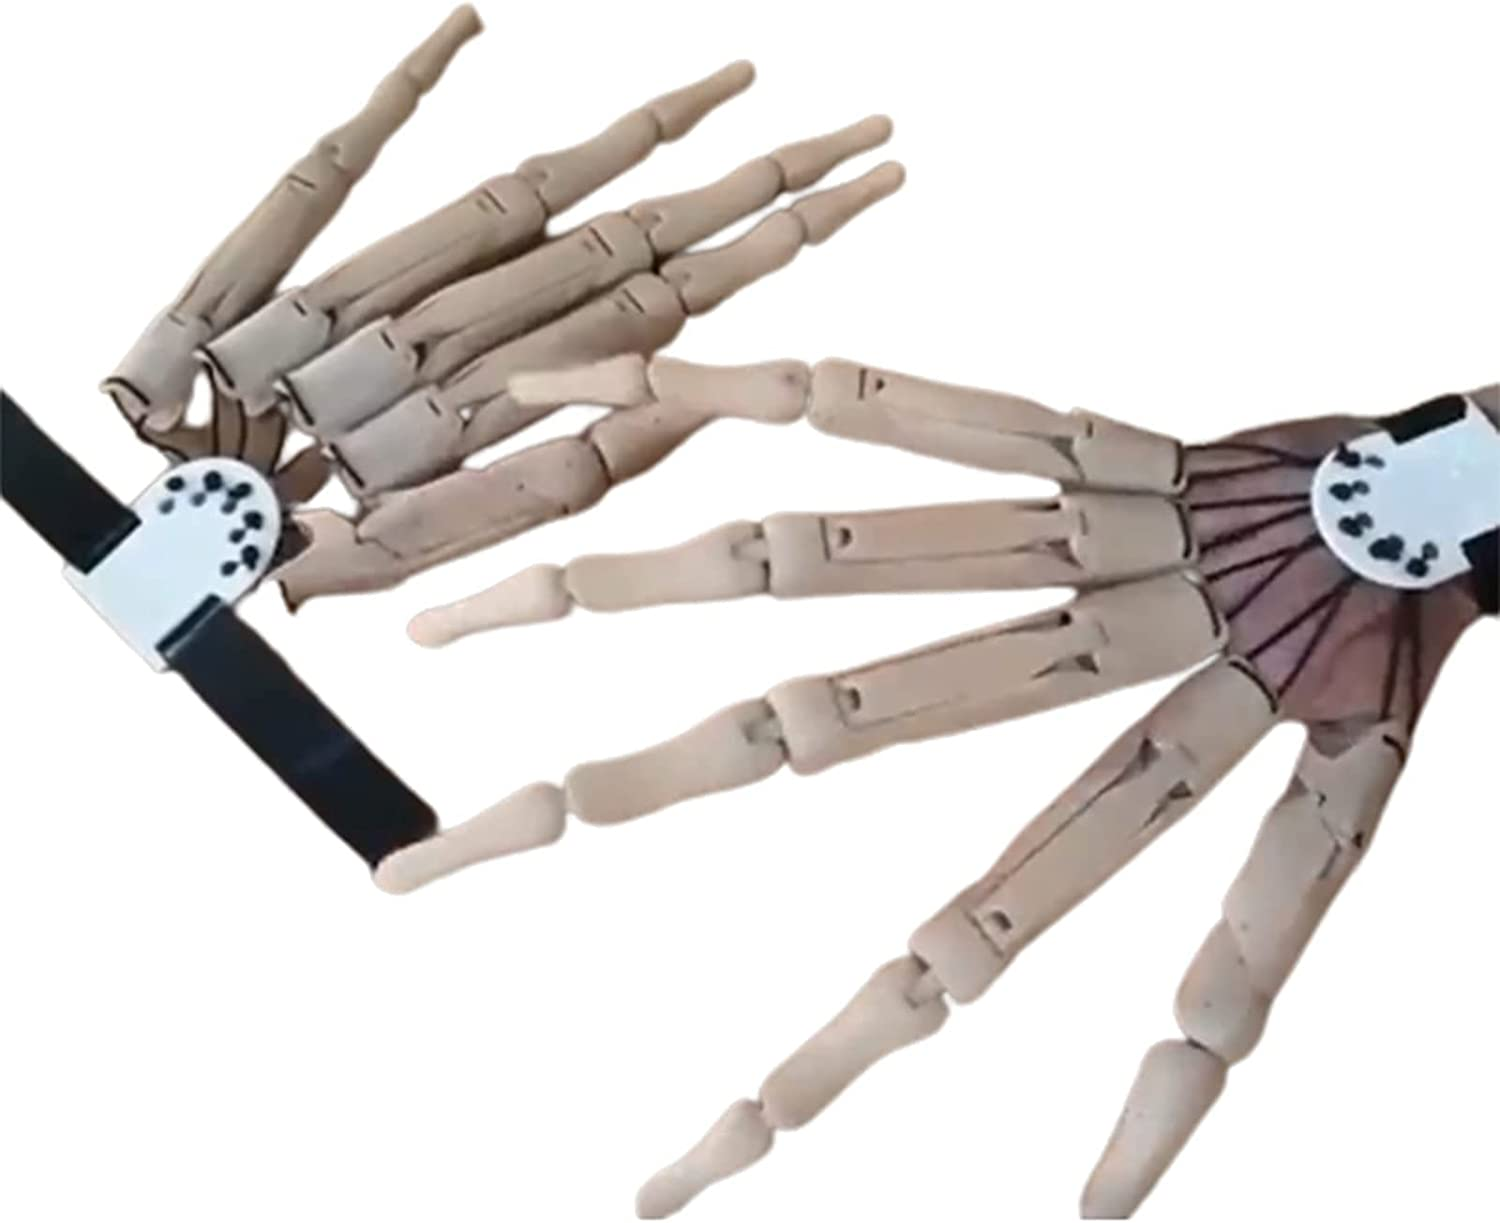 Halloween Articulated Max 73% OFF Fingers 3D Cash special price Printed Finger Ext